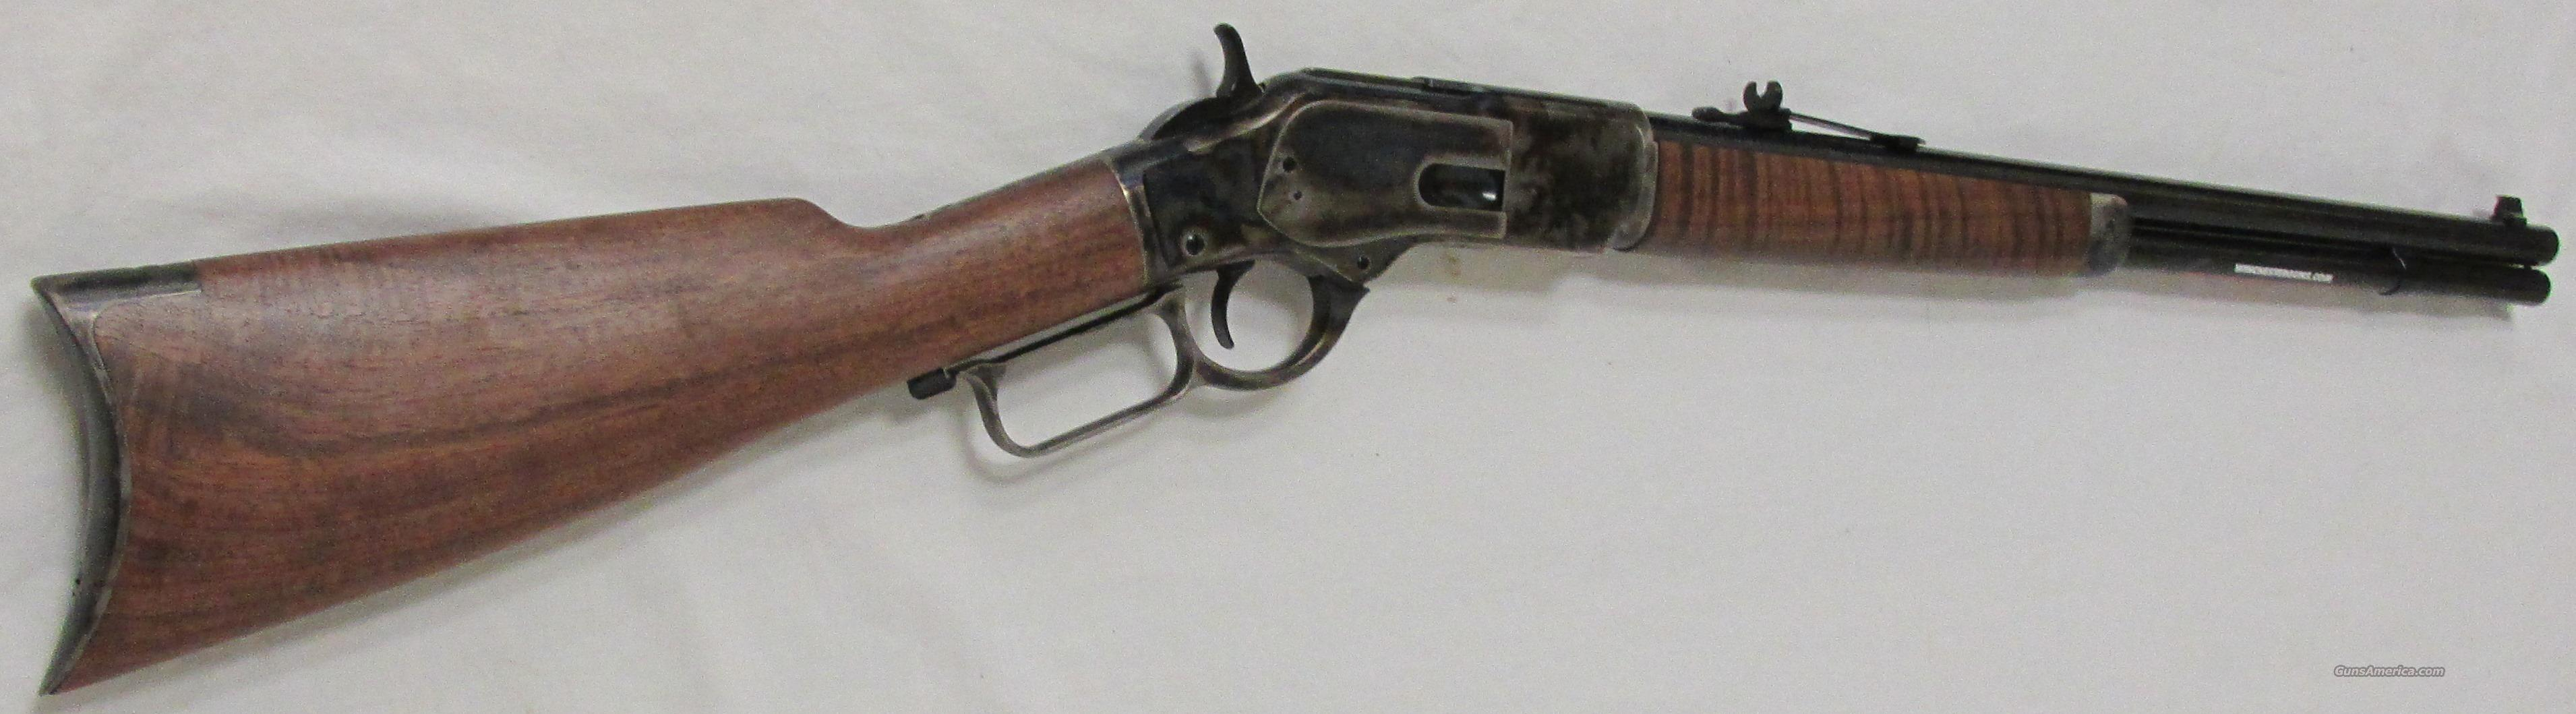 Winchester 1873 Case Hardened 357 Mag 38Spl SN:144  Guns > Rifles > Winchester Rifles - Modern Lever > Other Lever > Post-64